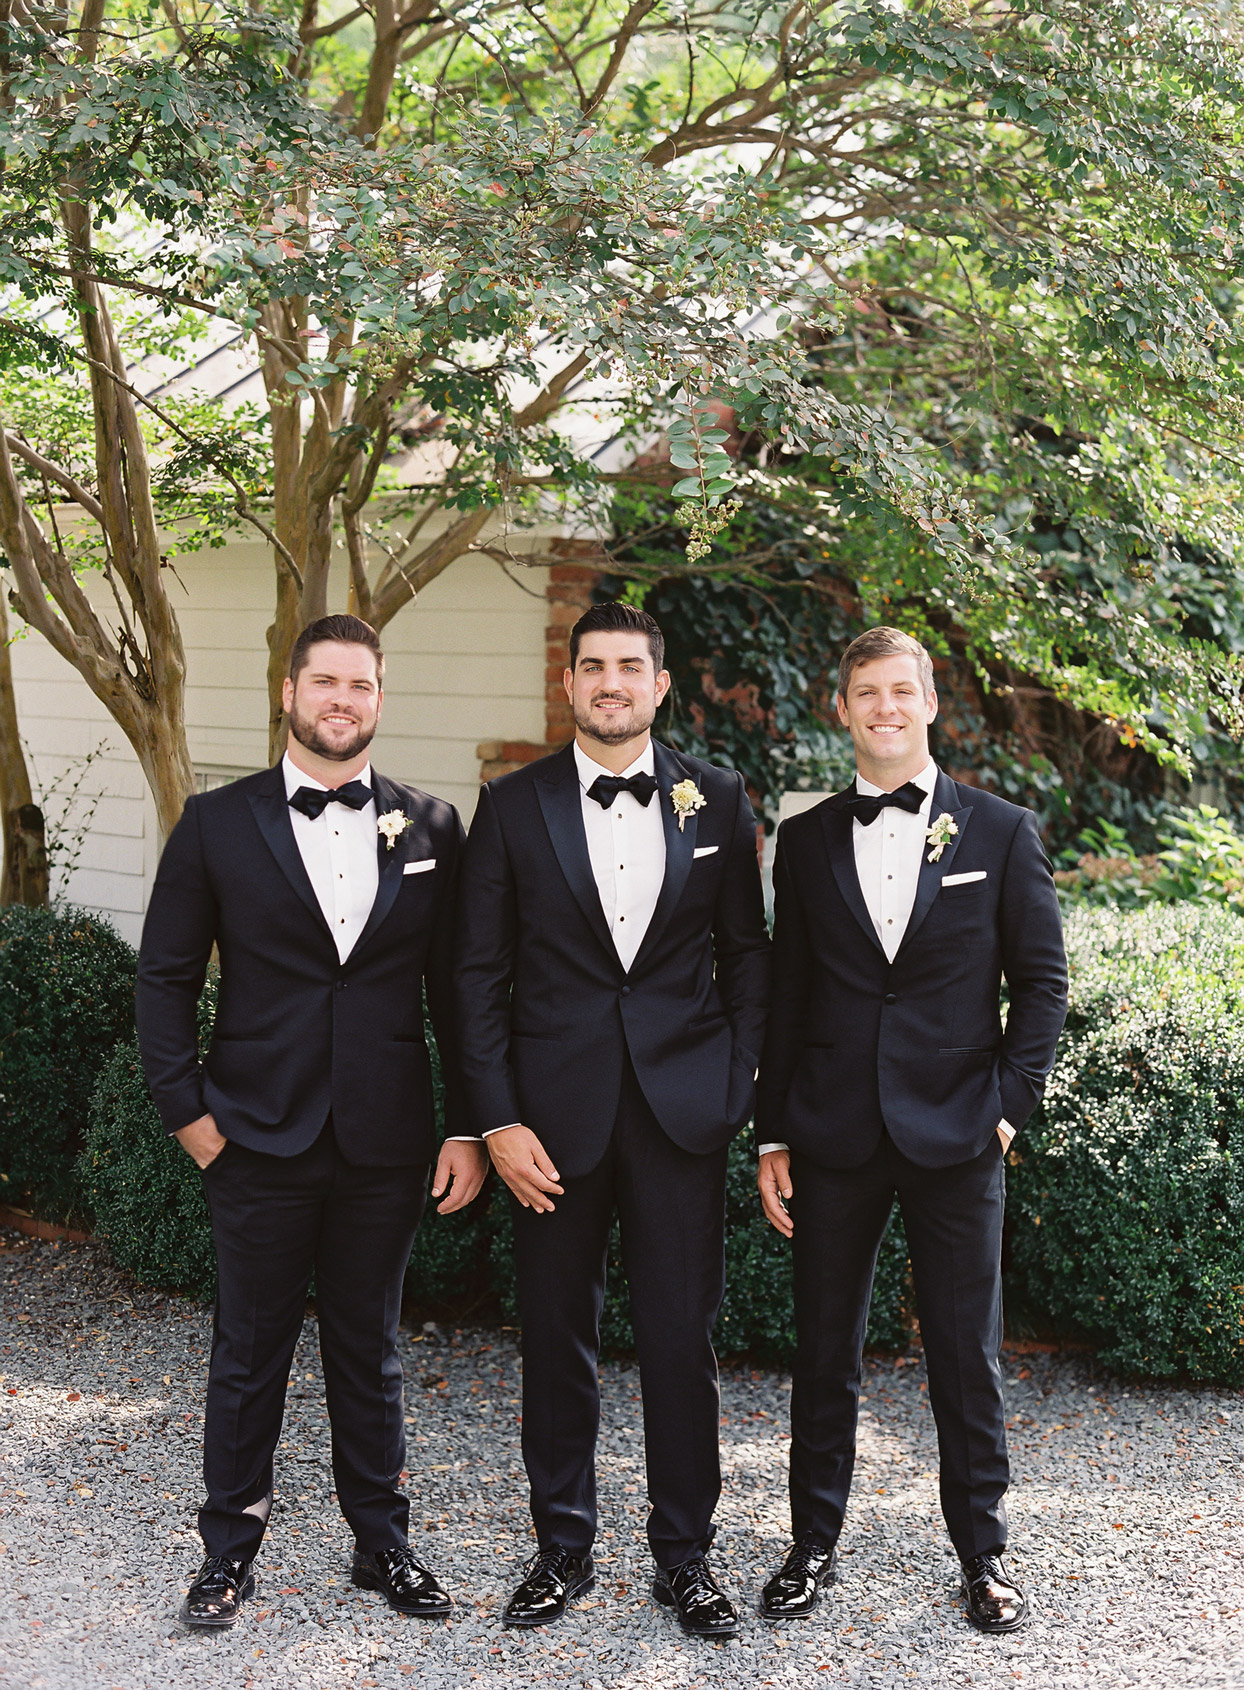 Groomsmen and groom in classic black tuxes